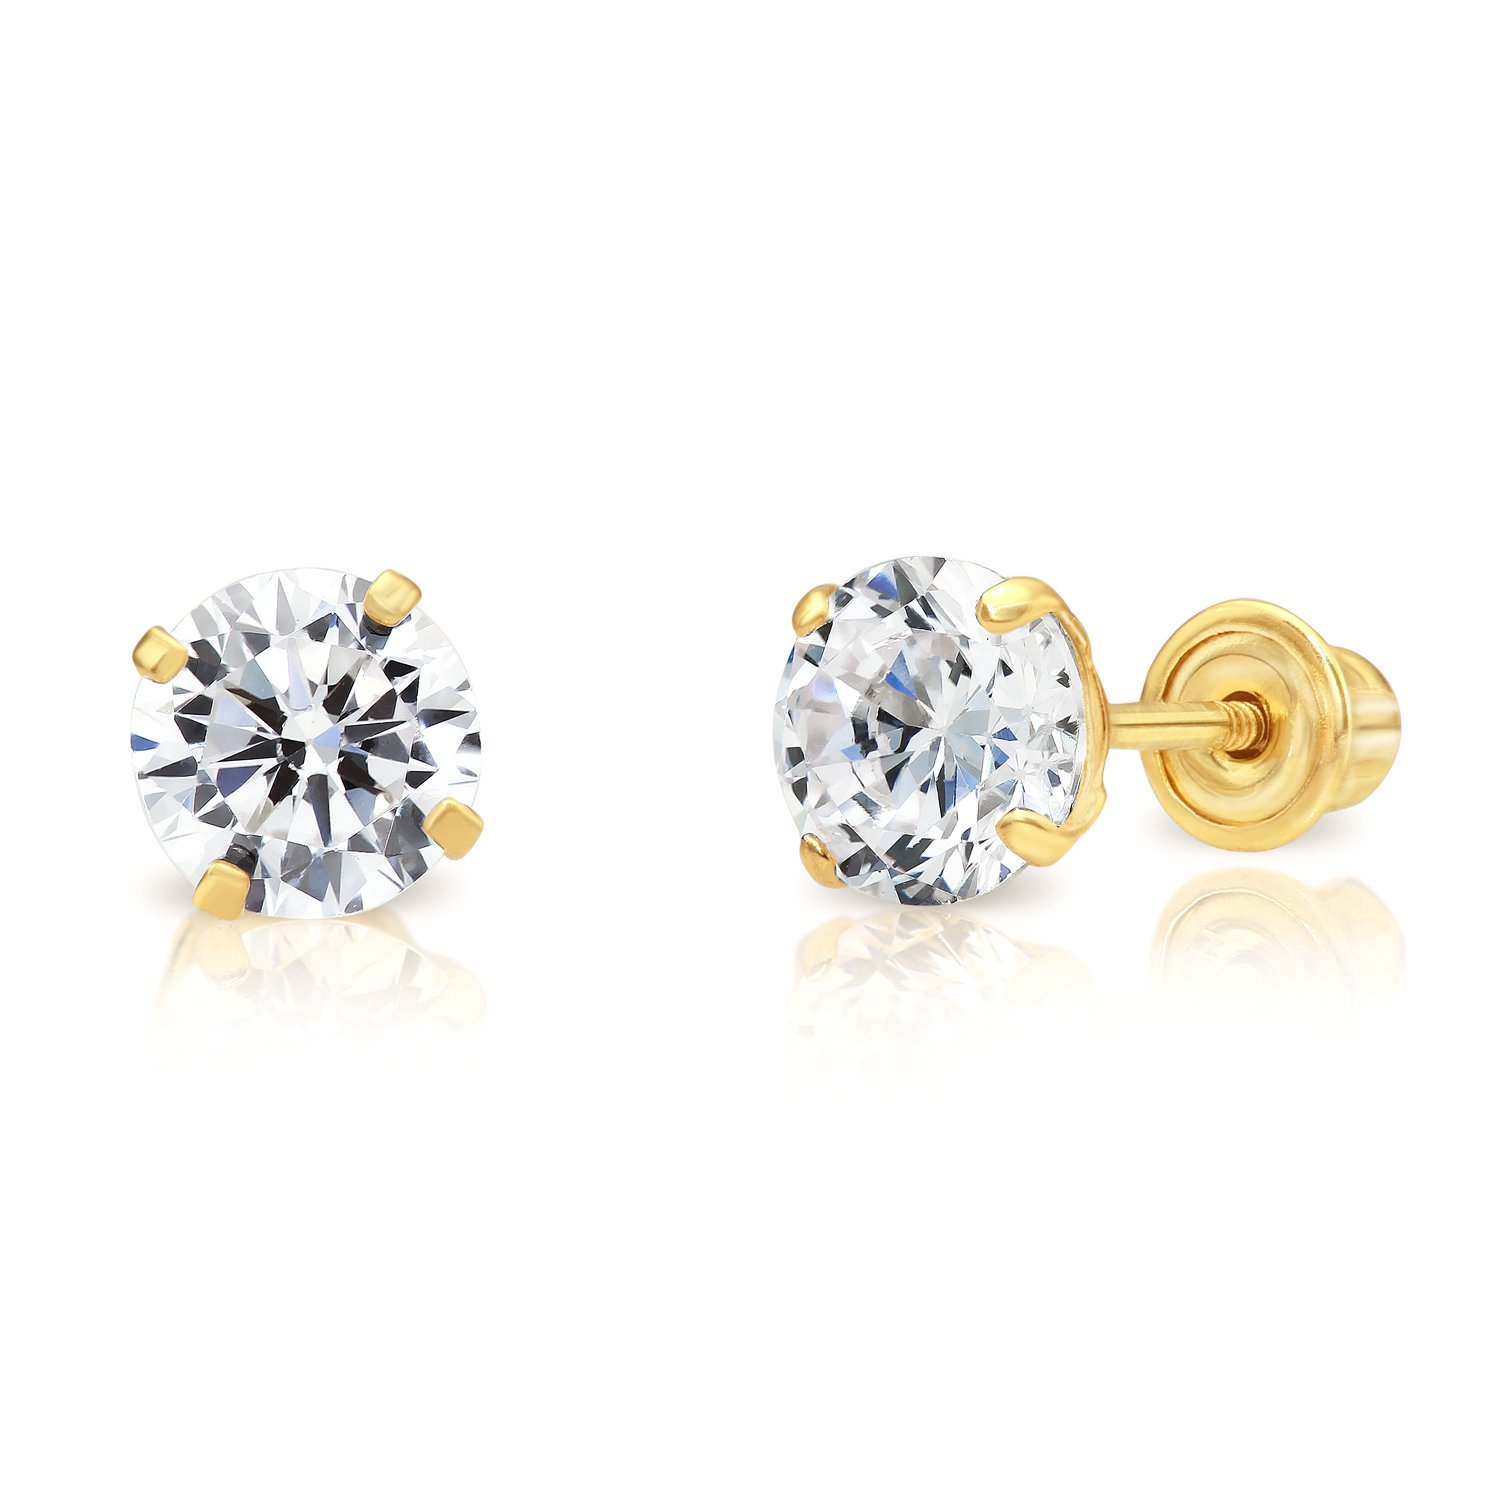 14k Yellow Gold Solitaire Cubic Zirconia Stud Earrings with Screw Backs (5mm)